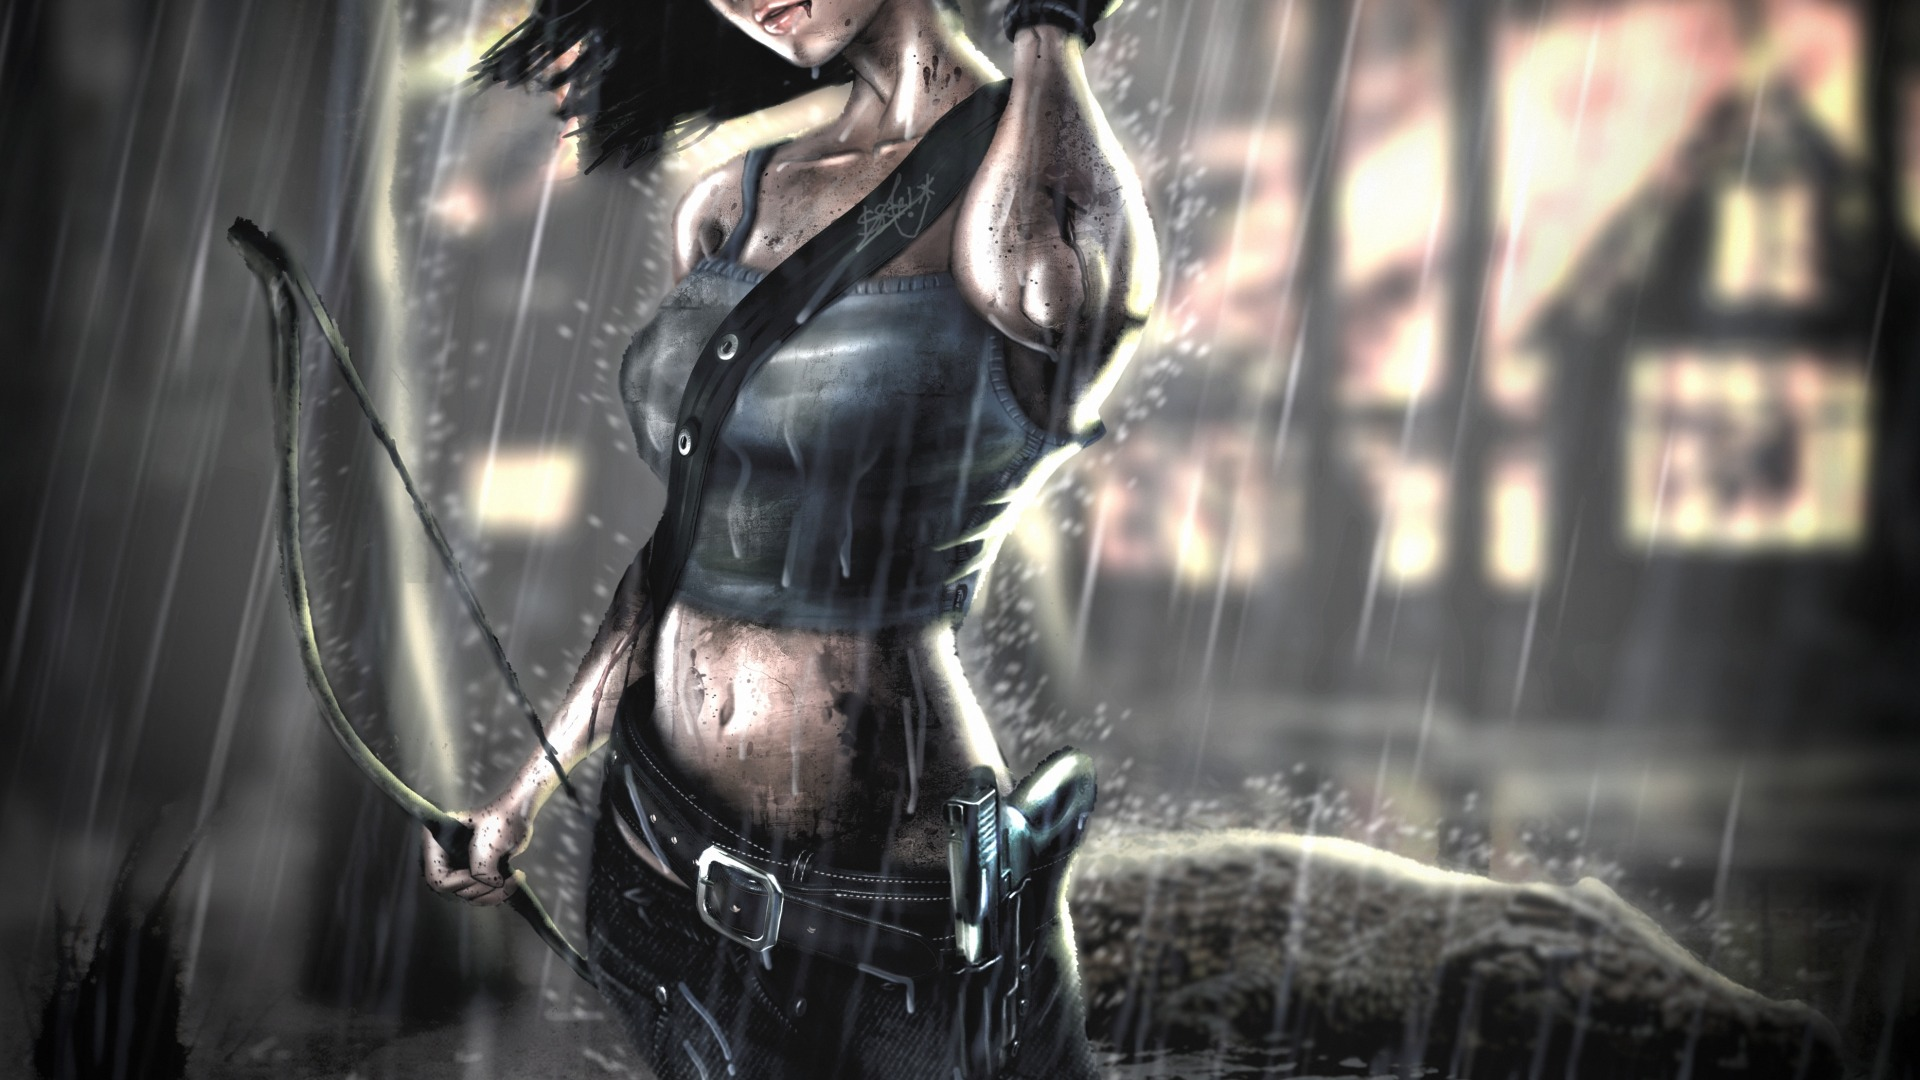 Wallpaper Lara Croft Heavy Rain Bow Gun Lara Croft 1920x1080 Wallpaper Teahub Io